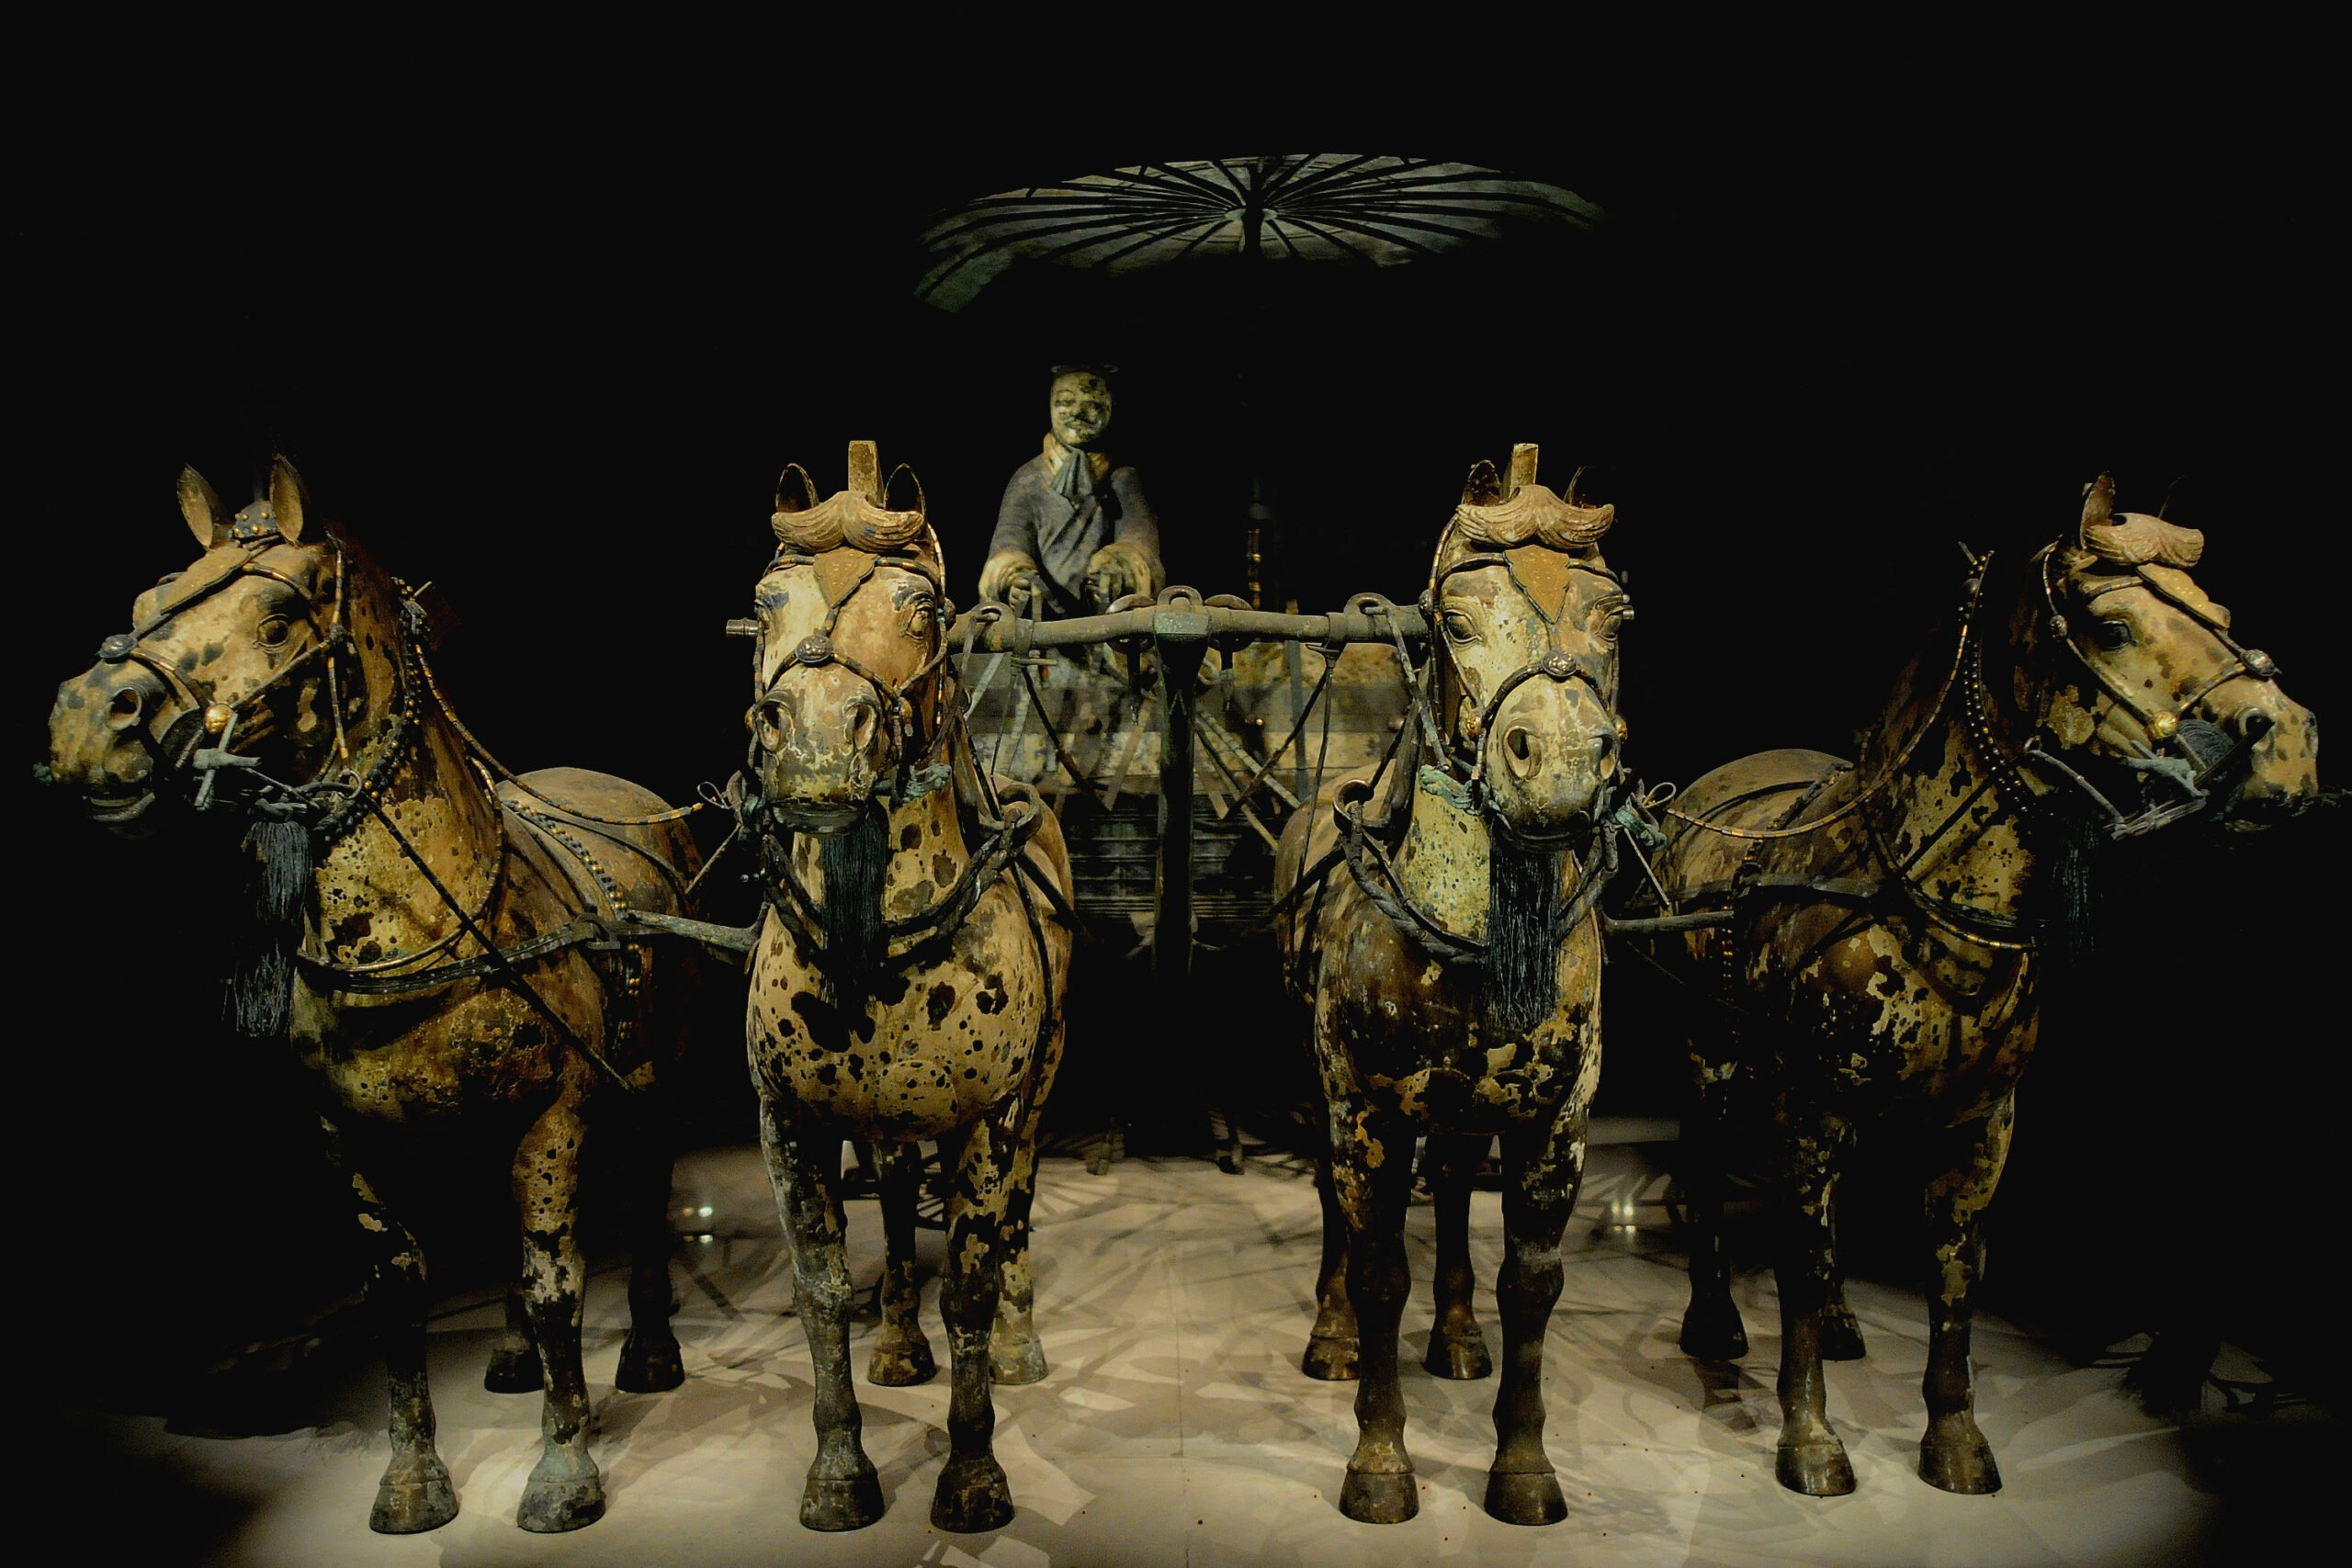 Discover The Amazing Terracotta Warriors Army In Our China Express 7 Day Package Tour